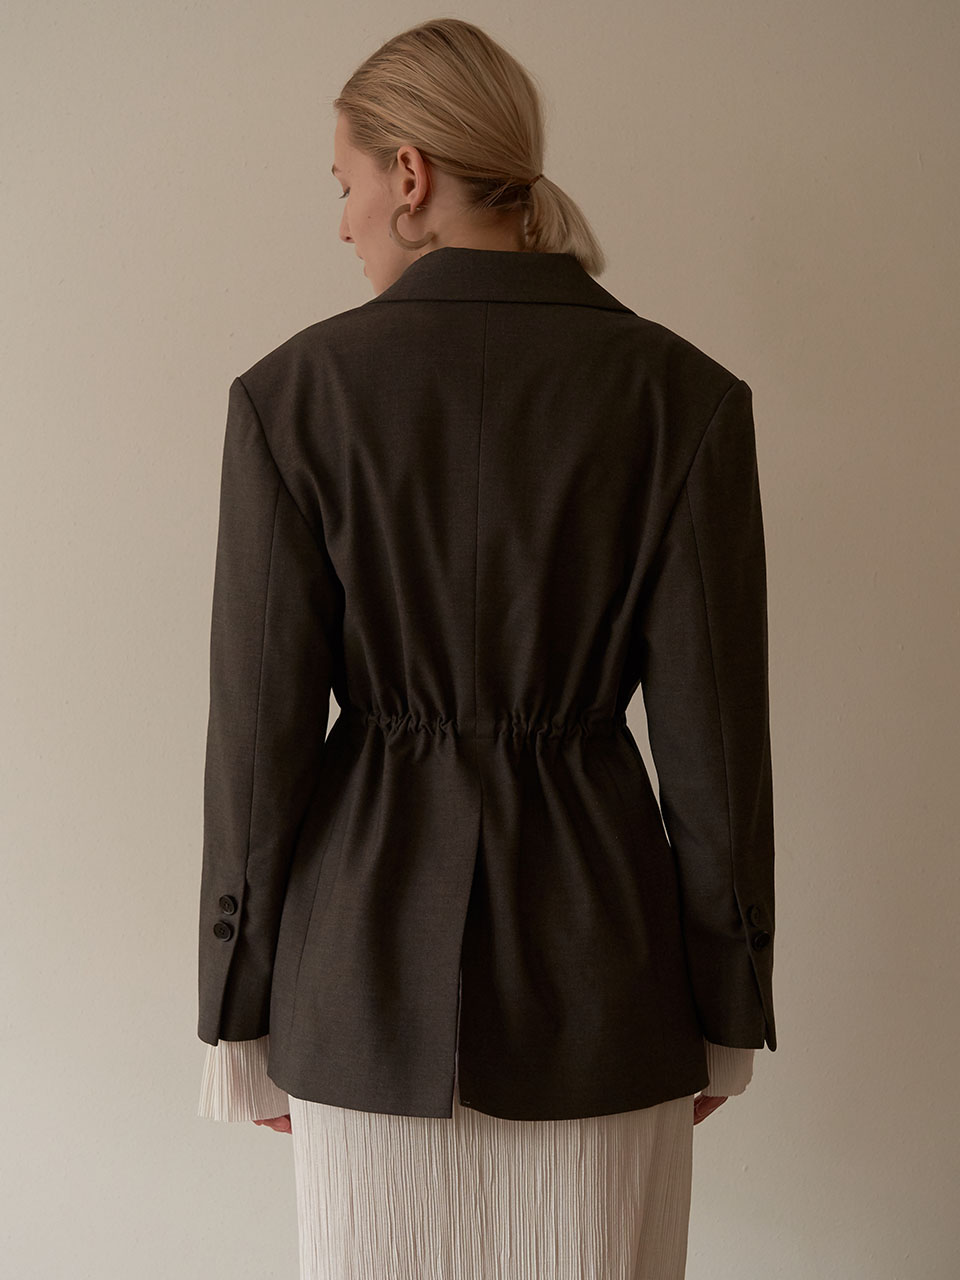 Glass jacket - Kaki Brown